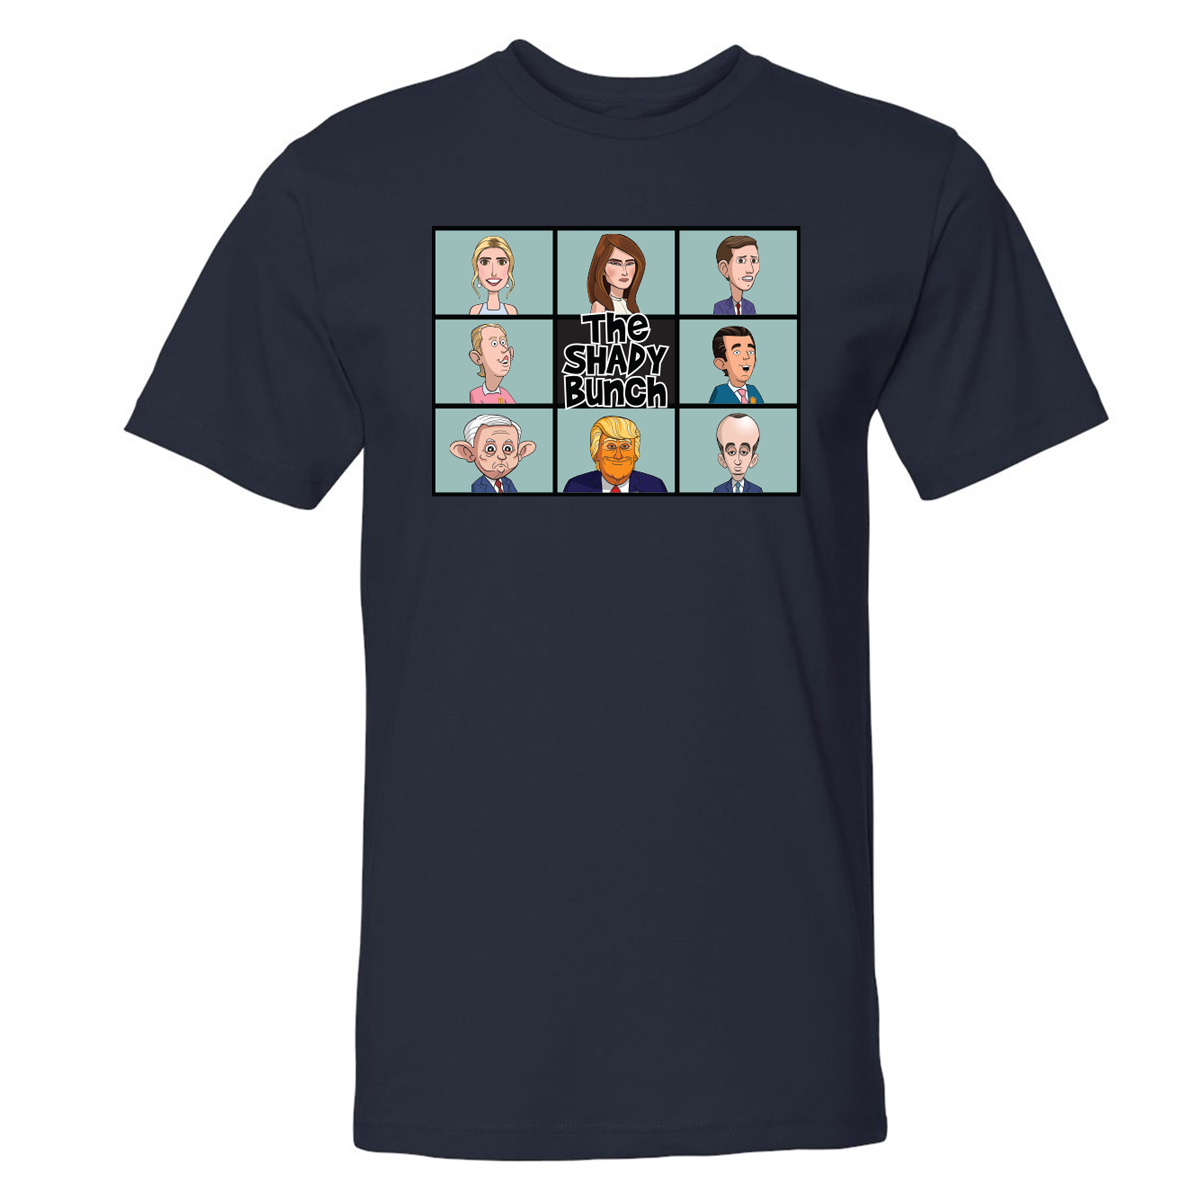 Our Cartoon President Shady Bunch T-Shirt